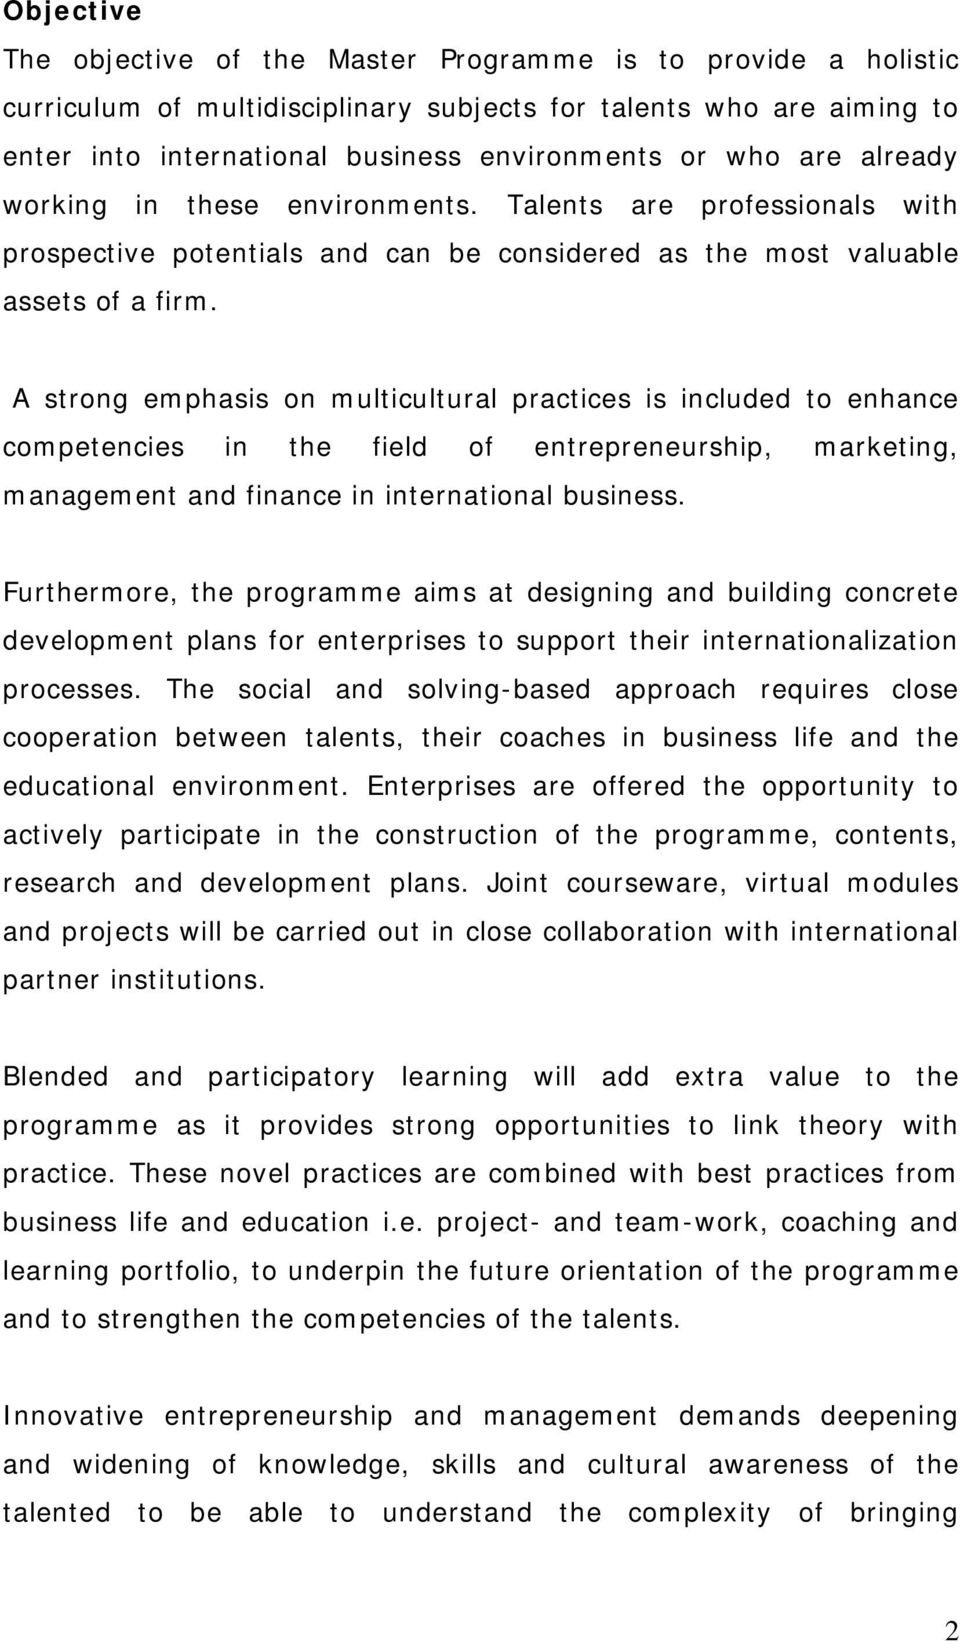 A strong emphasis on multicultural practices is included to enhance competencies in the field of entrepreneurship, marketing, management and finance in international business.